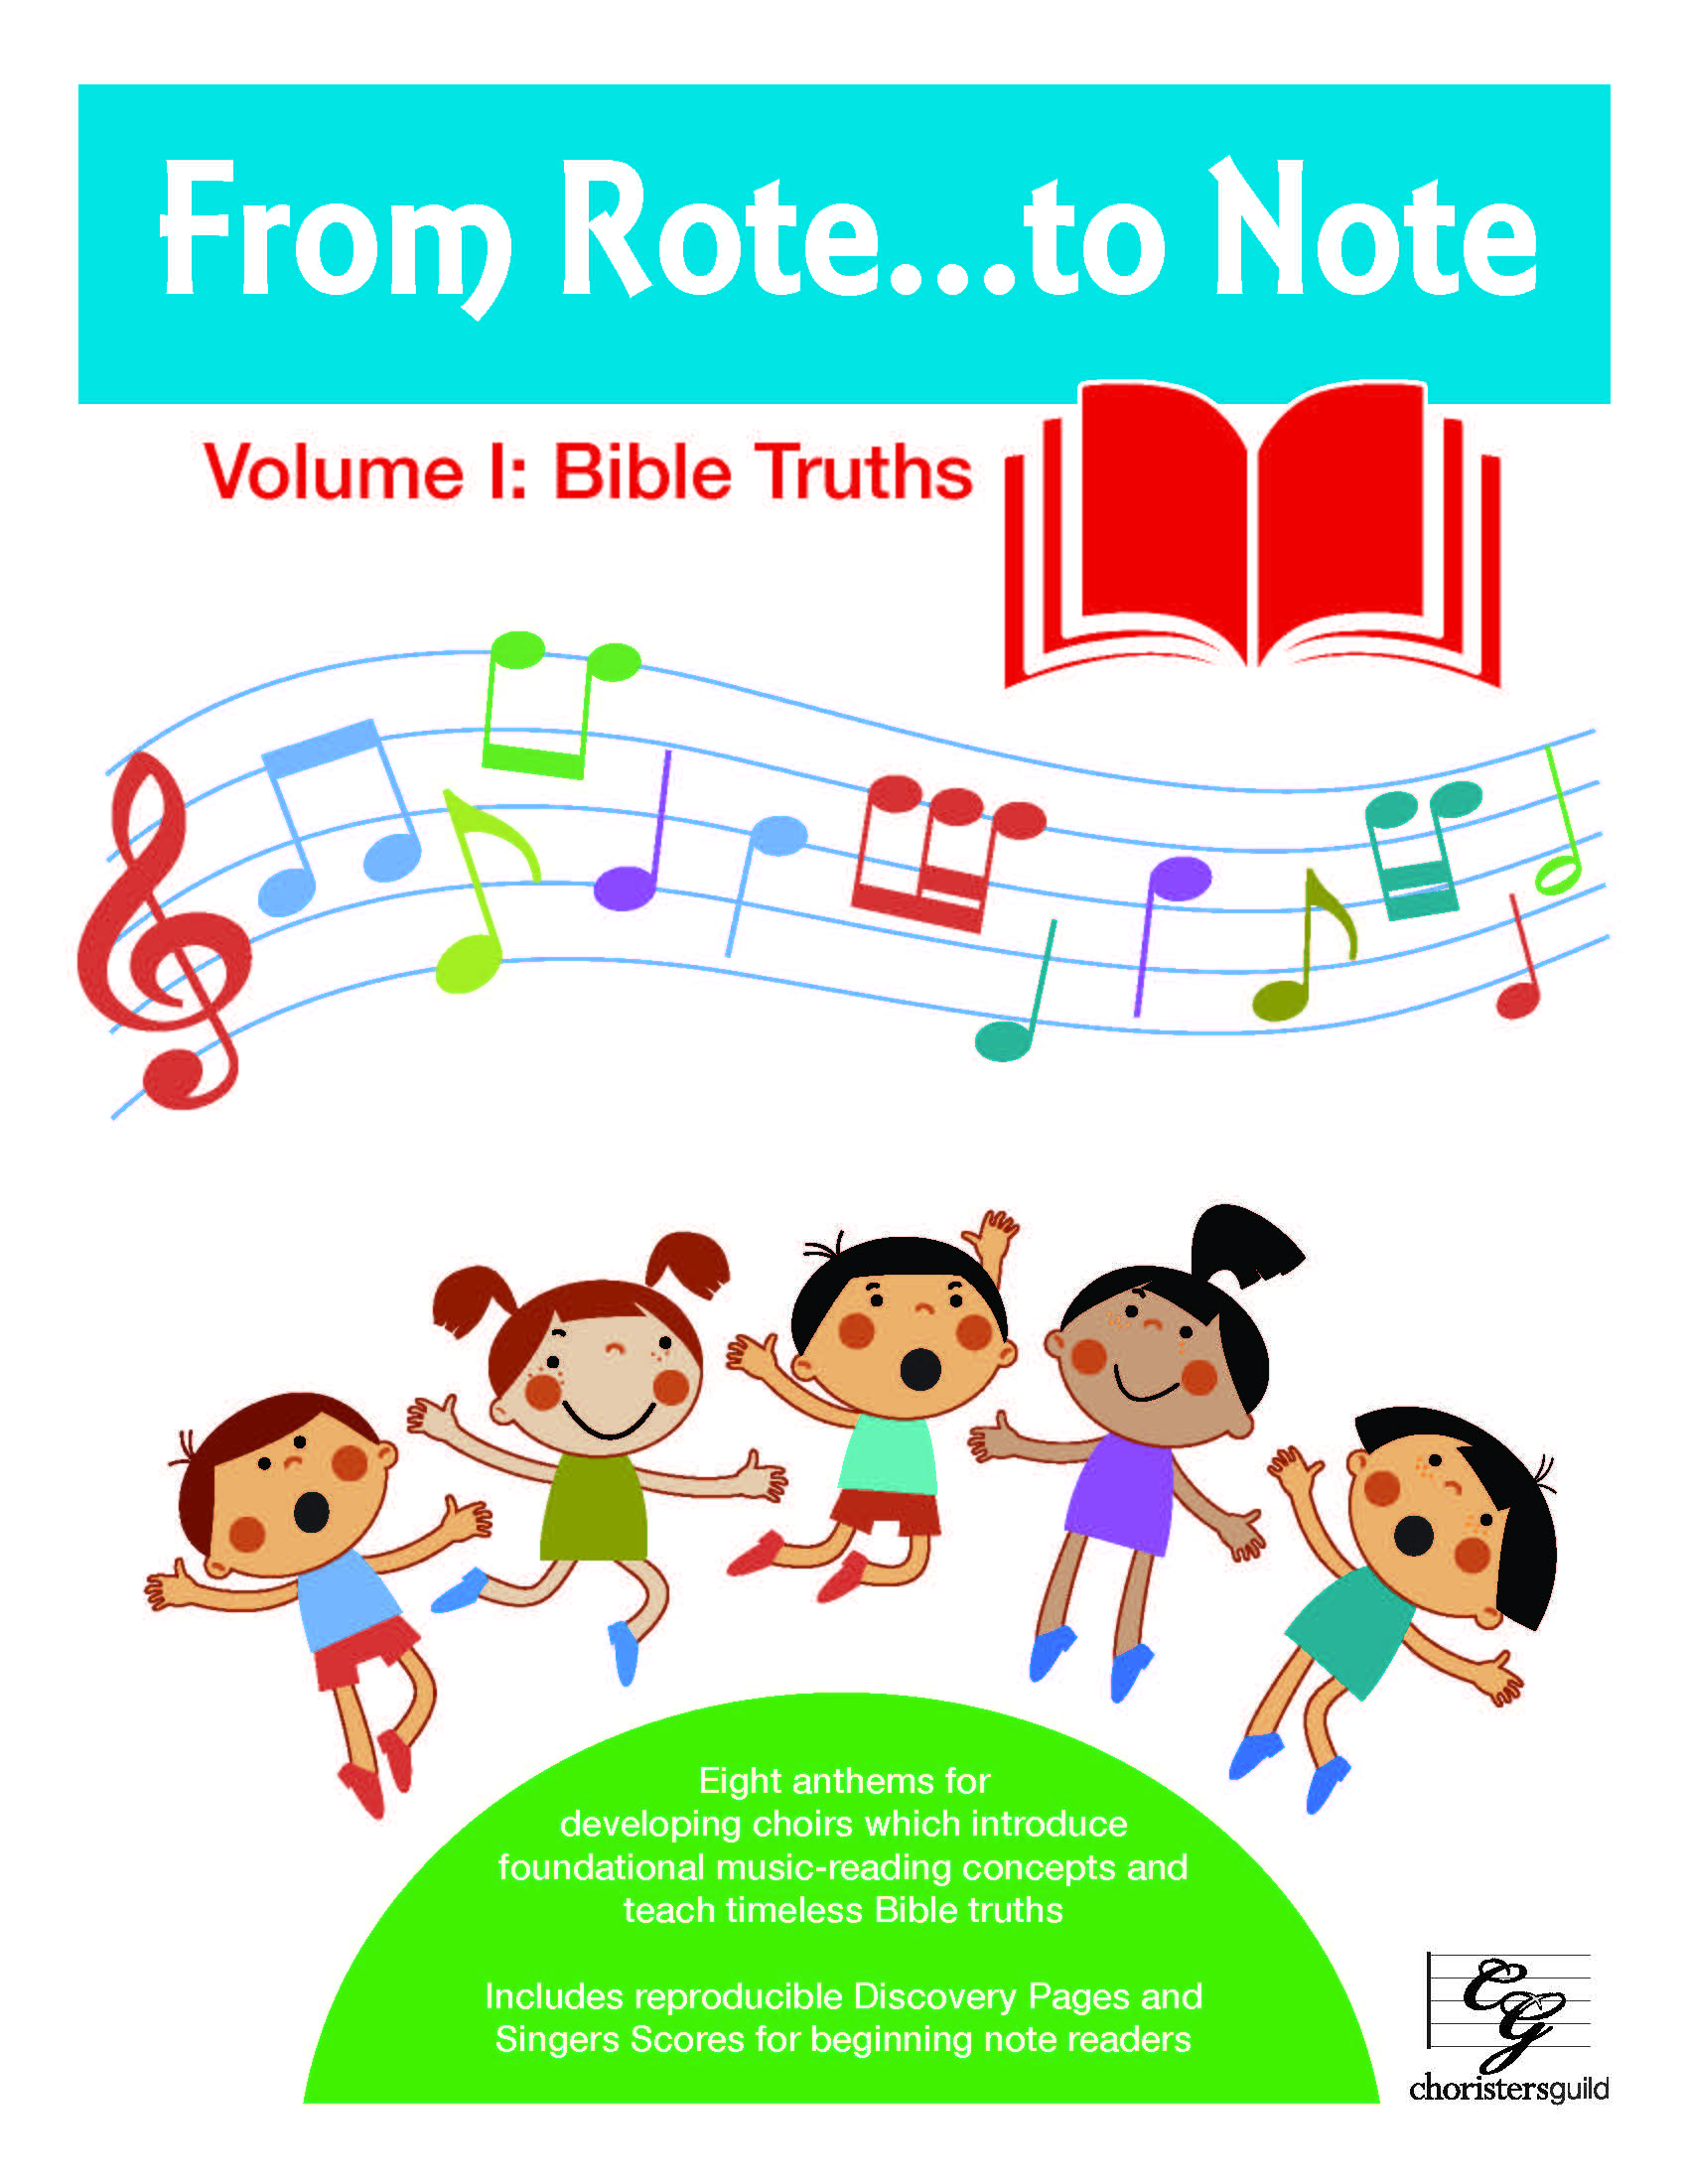 From Rote...to Note Vol. 1 (Reproducible)